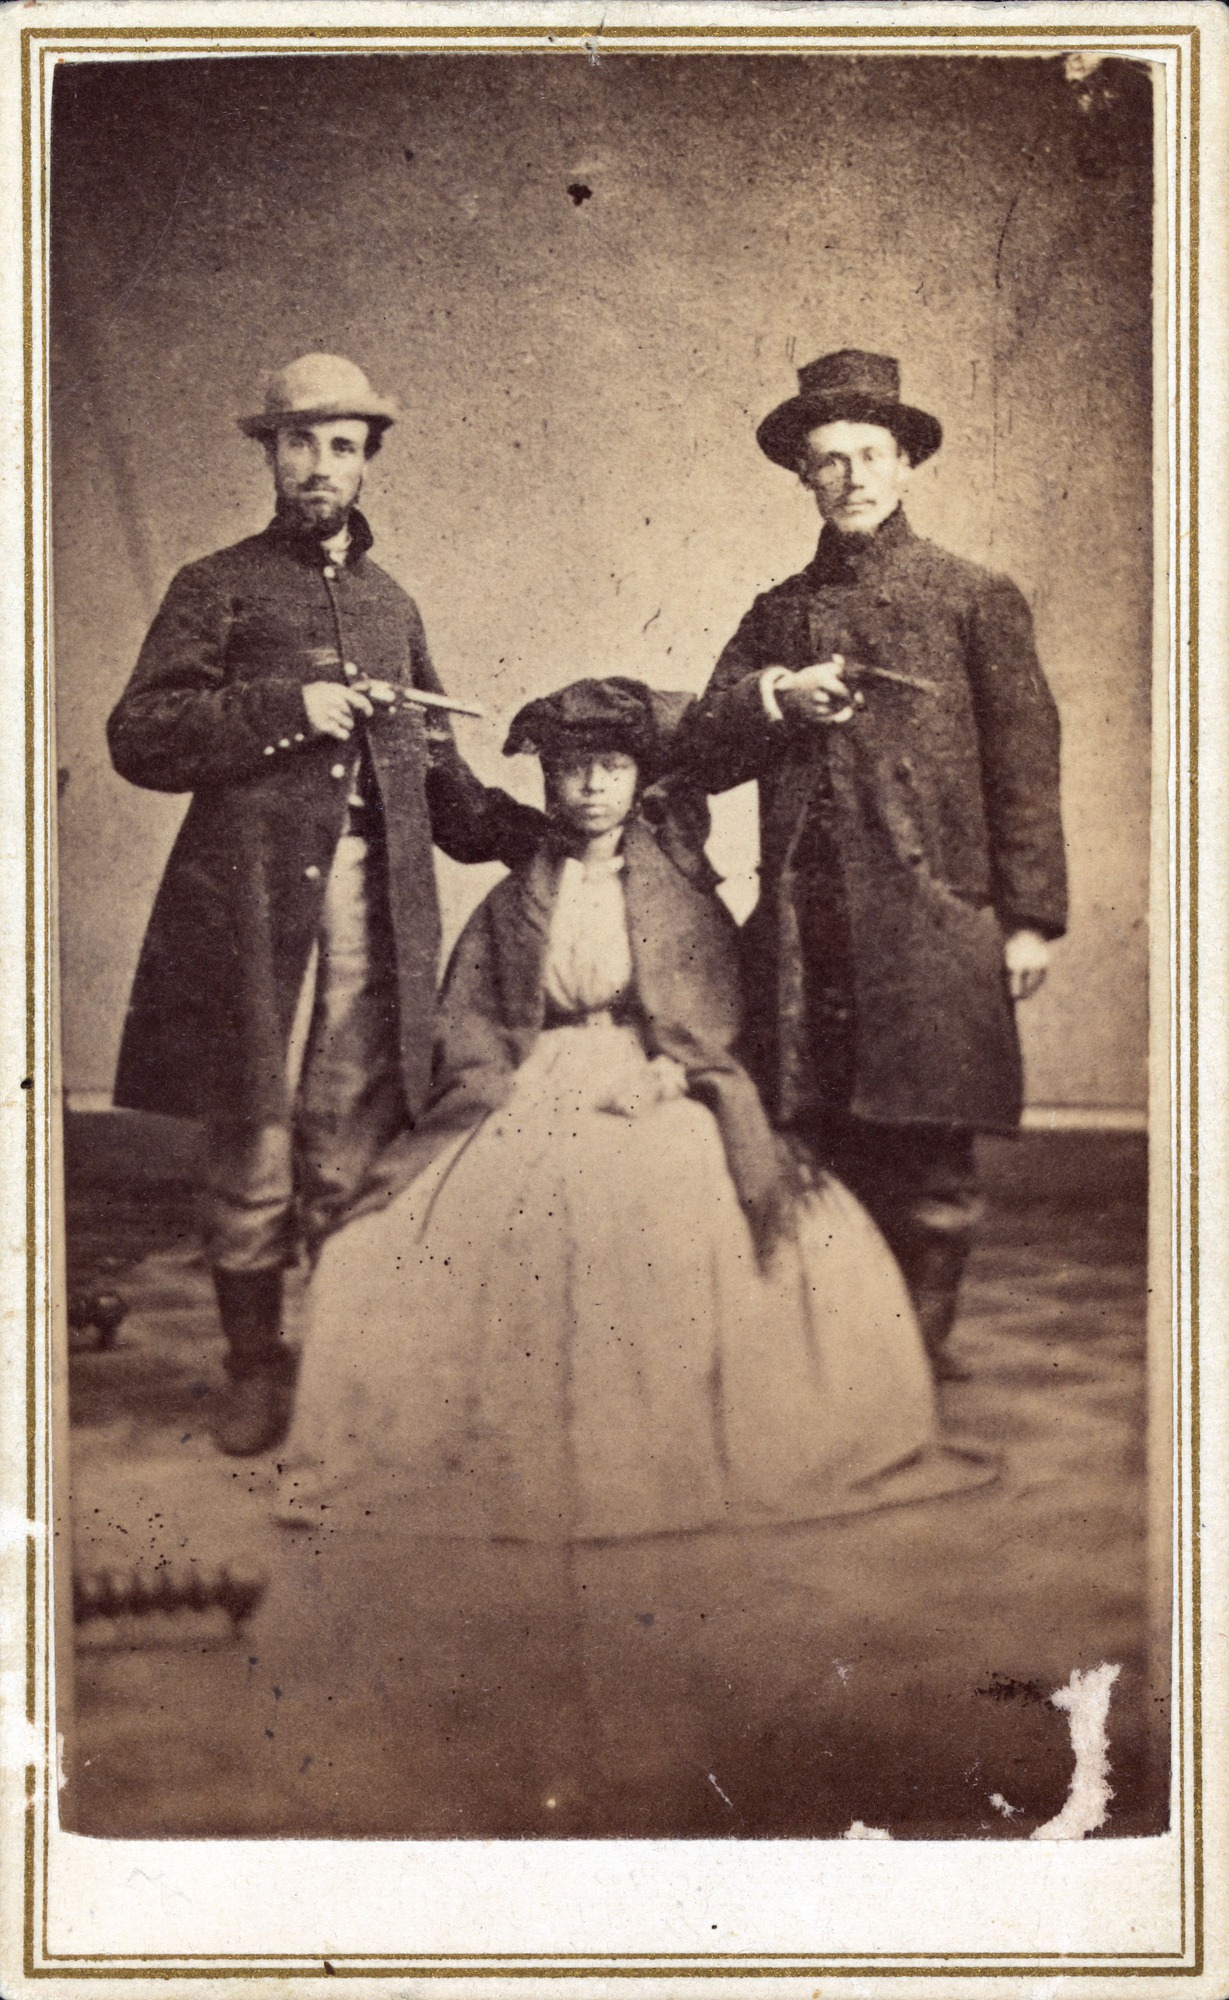 Fugitive slave? — Daily Observations from The Civil War